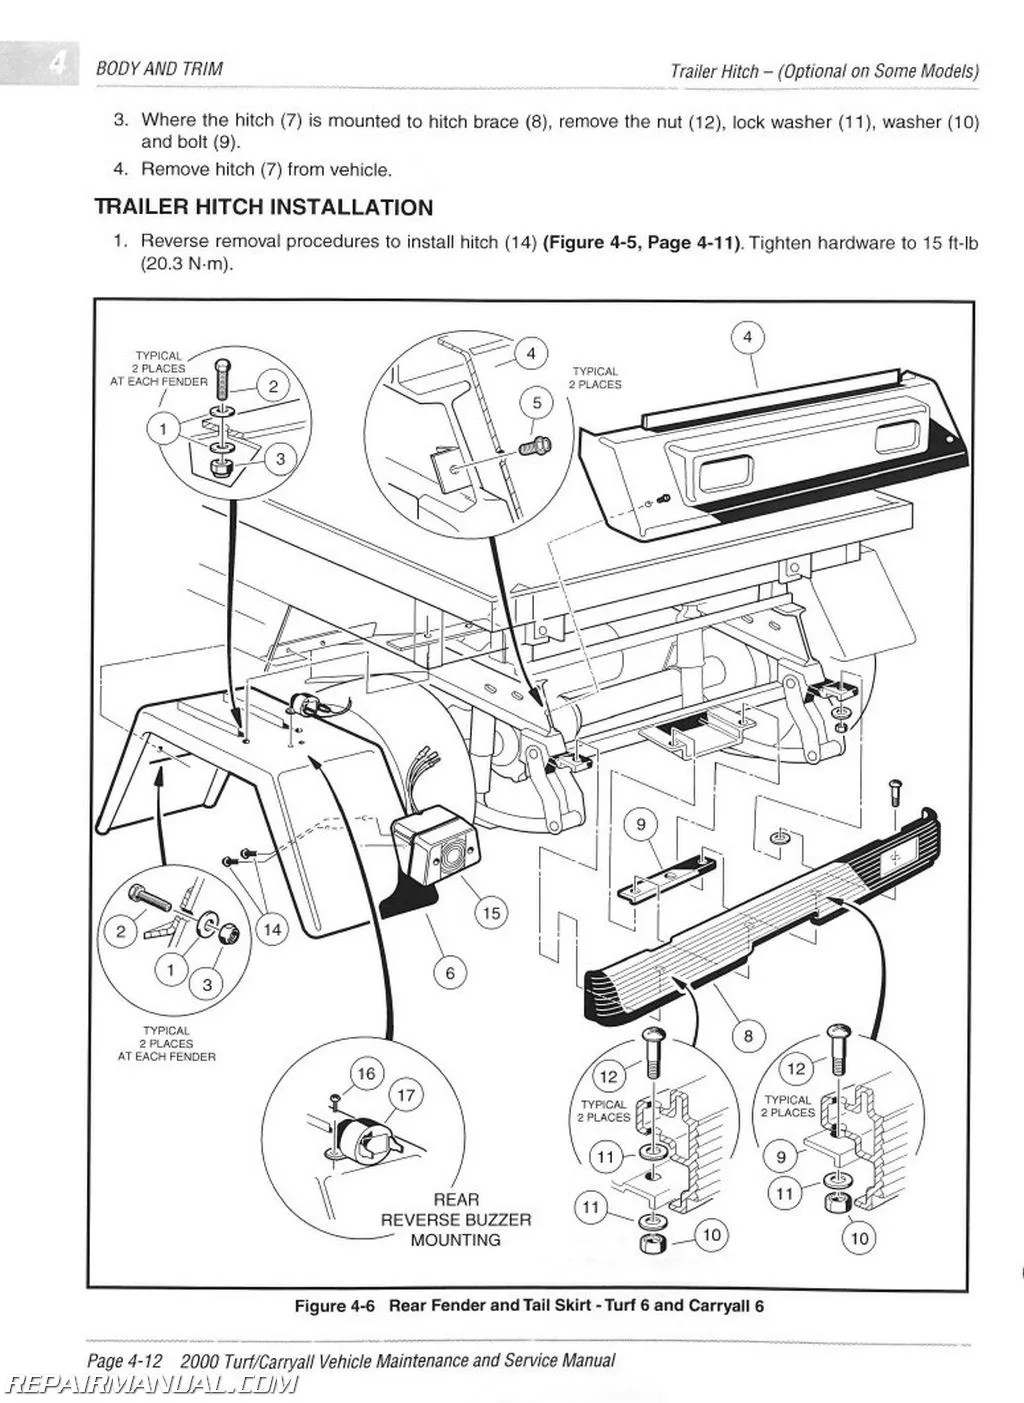 club car schematics wiring diagram databasediagram club battery car carryall ll 6 [ 1024 x 1403 Pixel ]